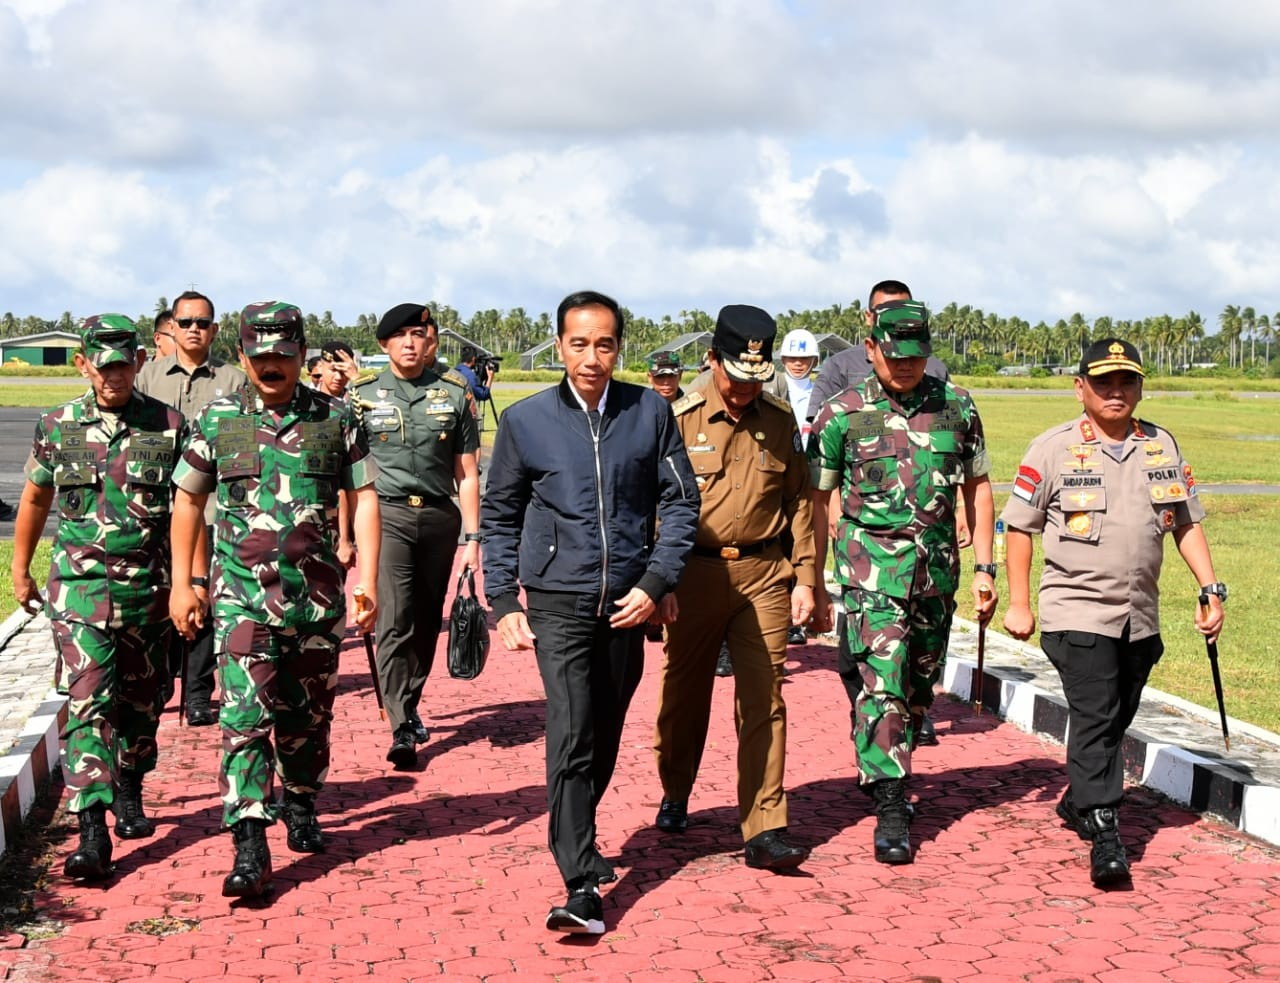 Jokowi visits Natuna, set to inspect waters amid ongoing spat with China